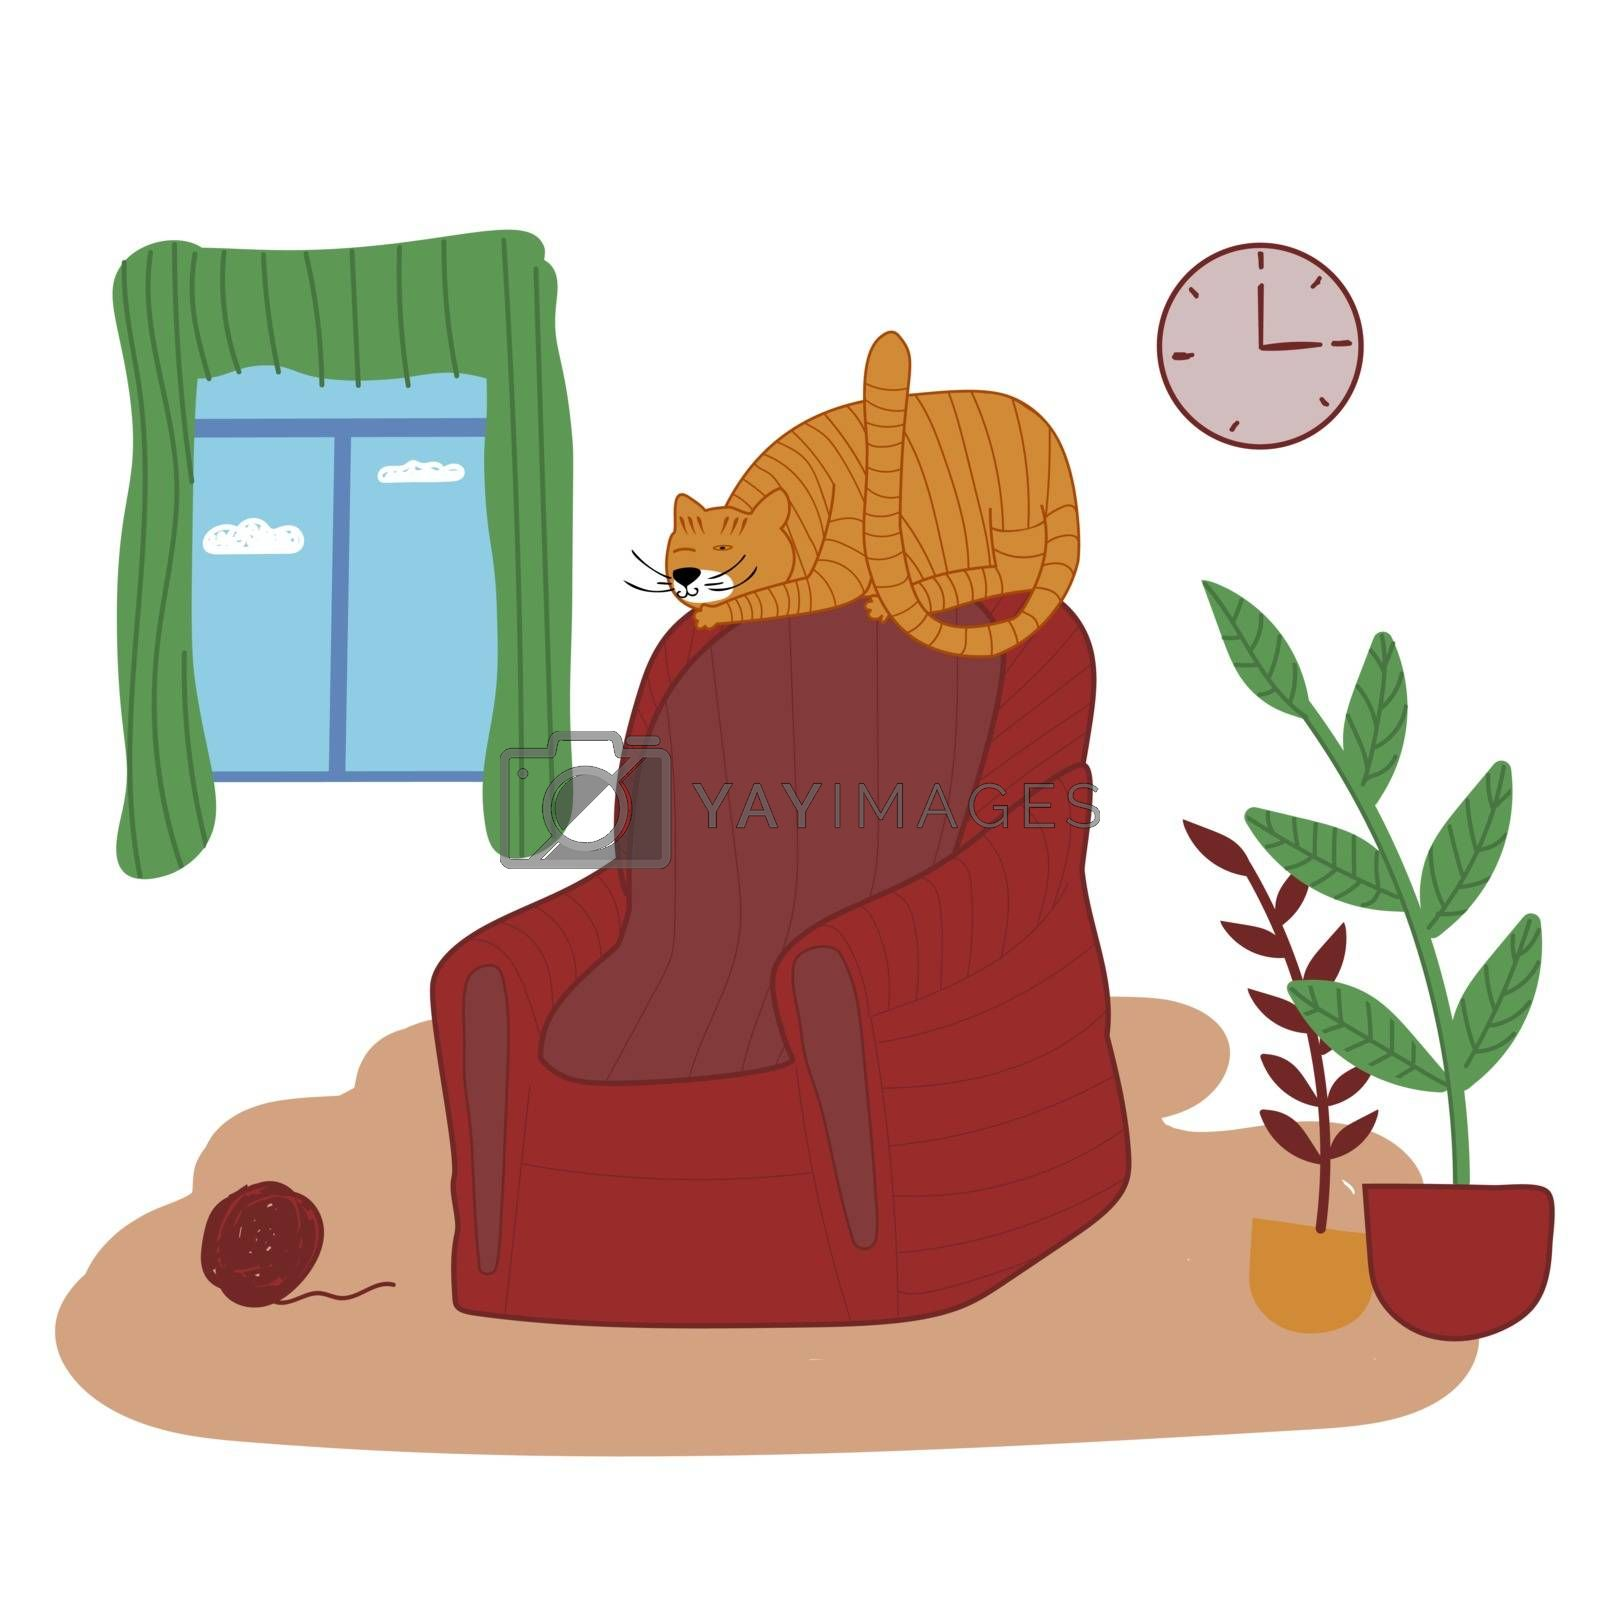 Comfortable living room interior with a ginger cat sitting on an armchair and ottoman, indoor plants growing in pots, and interior items. Vector illustration in hand-drawn style